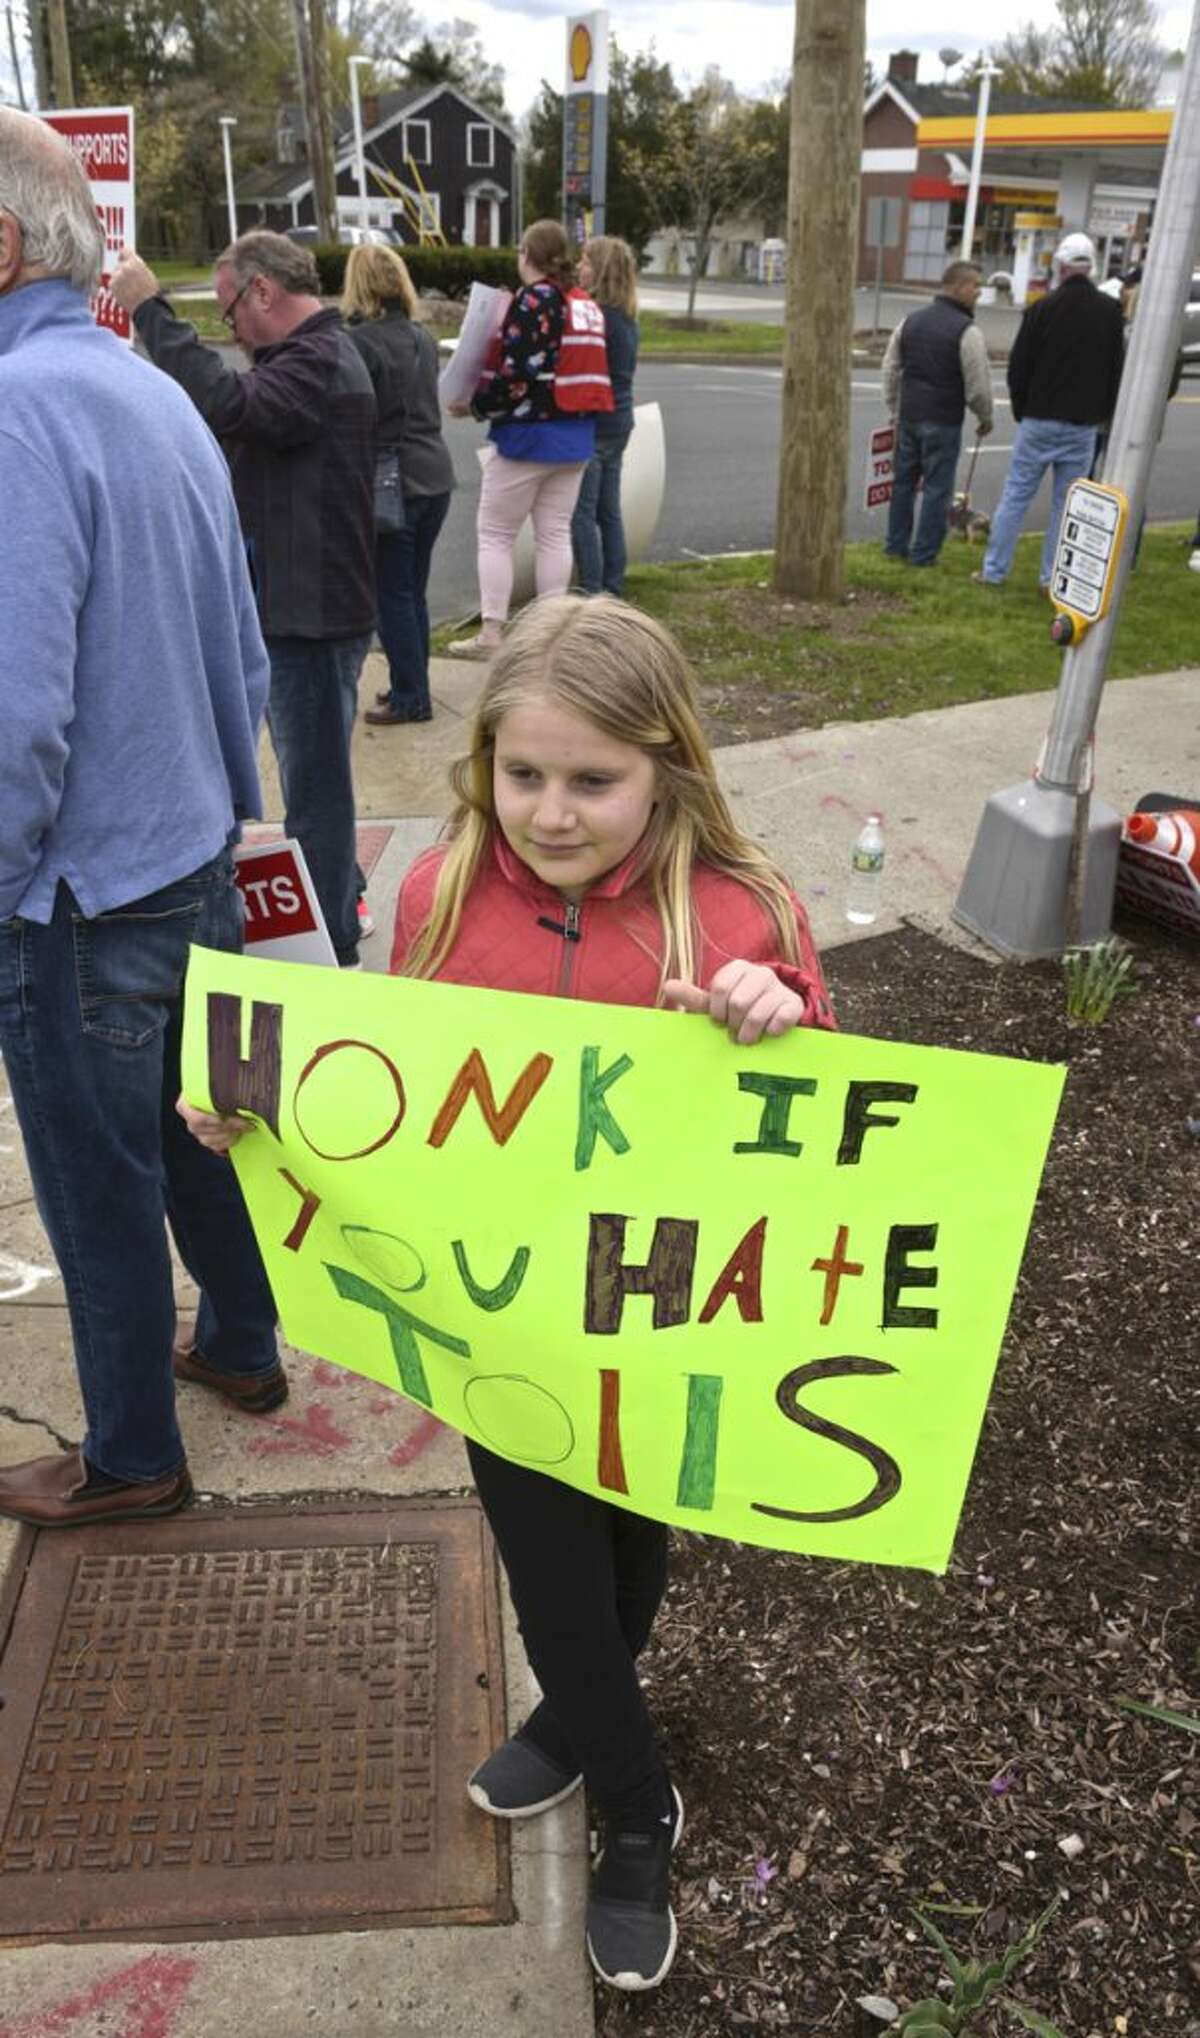 Rachel Floegel, 11, of Ridgefield, takes part in a No Tolls Ct protest in front of Copps Hill Plaza, on Danbury Road, in Ridgefield, Conn., Saturday morning, April 27, 2019.